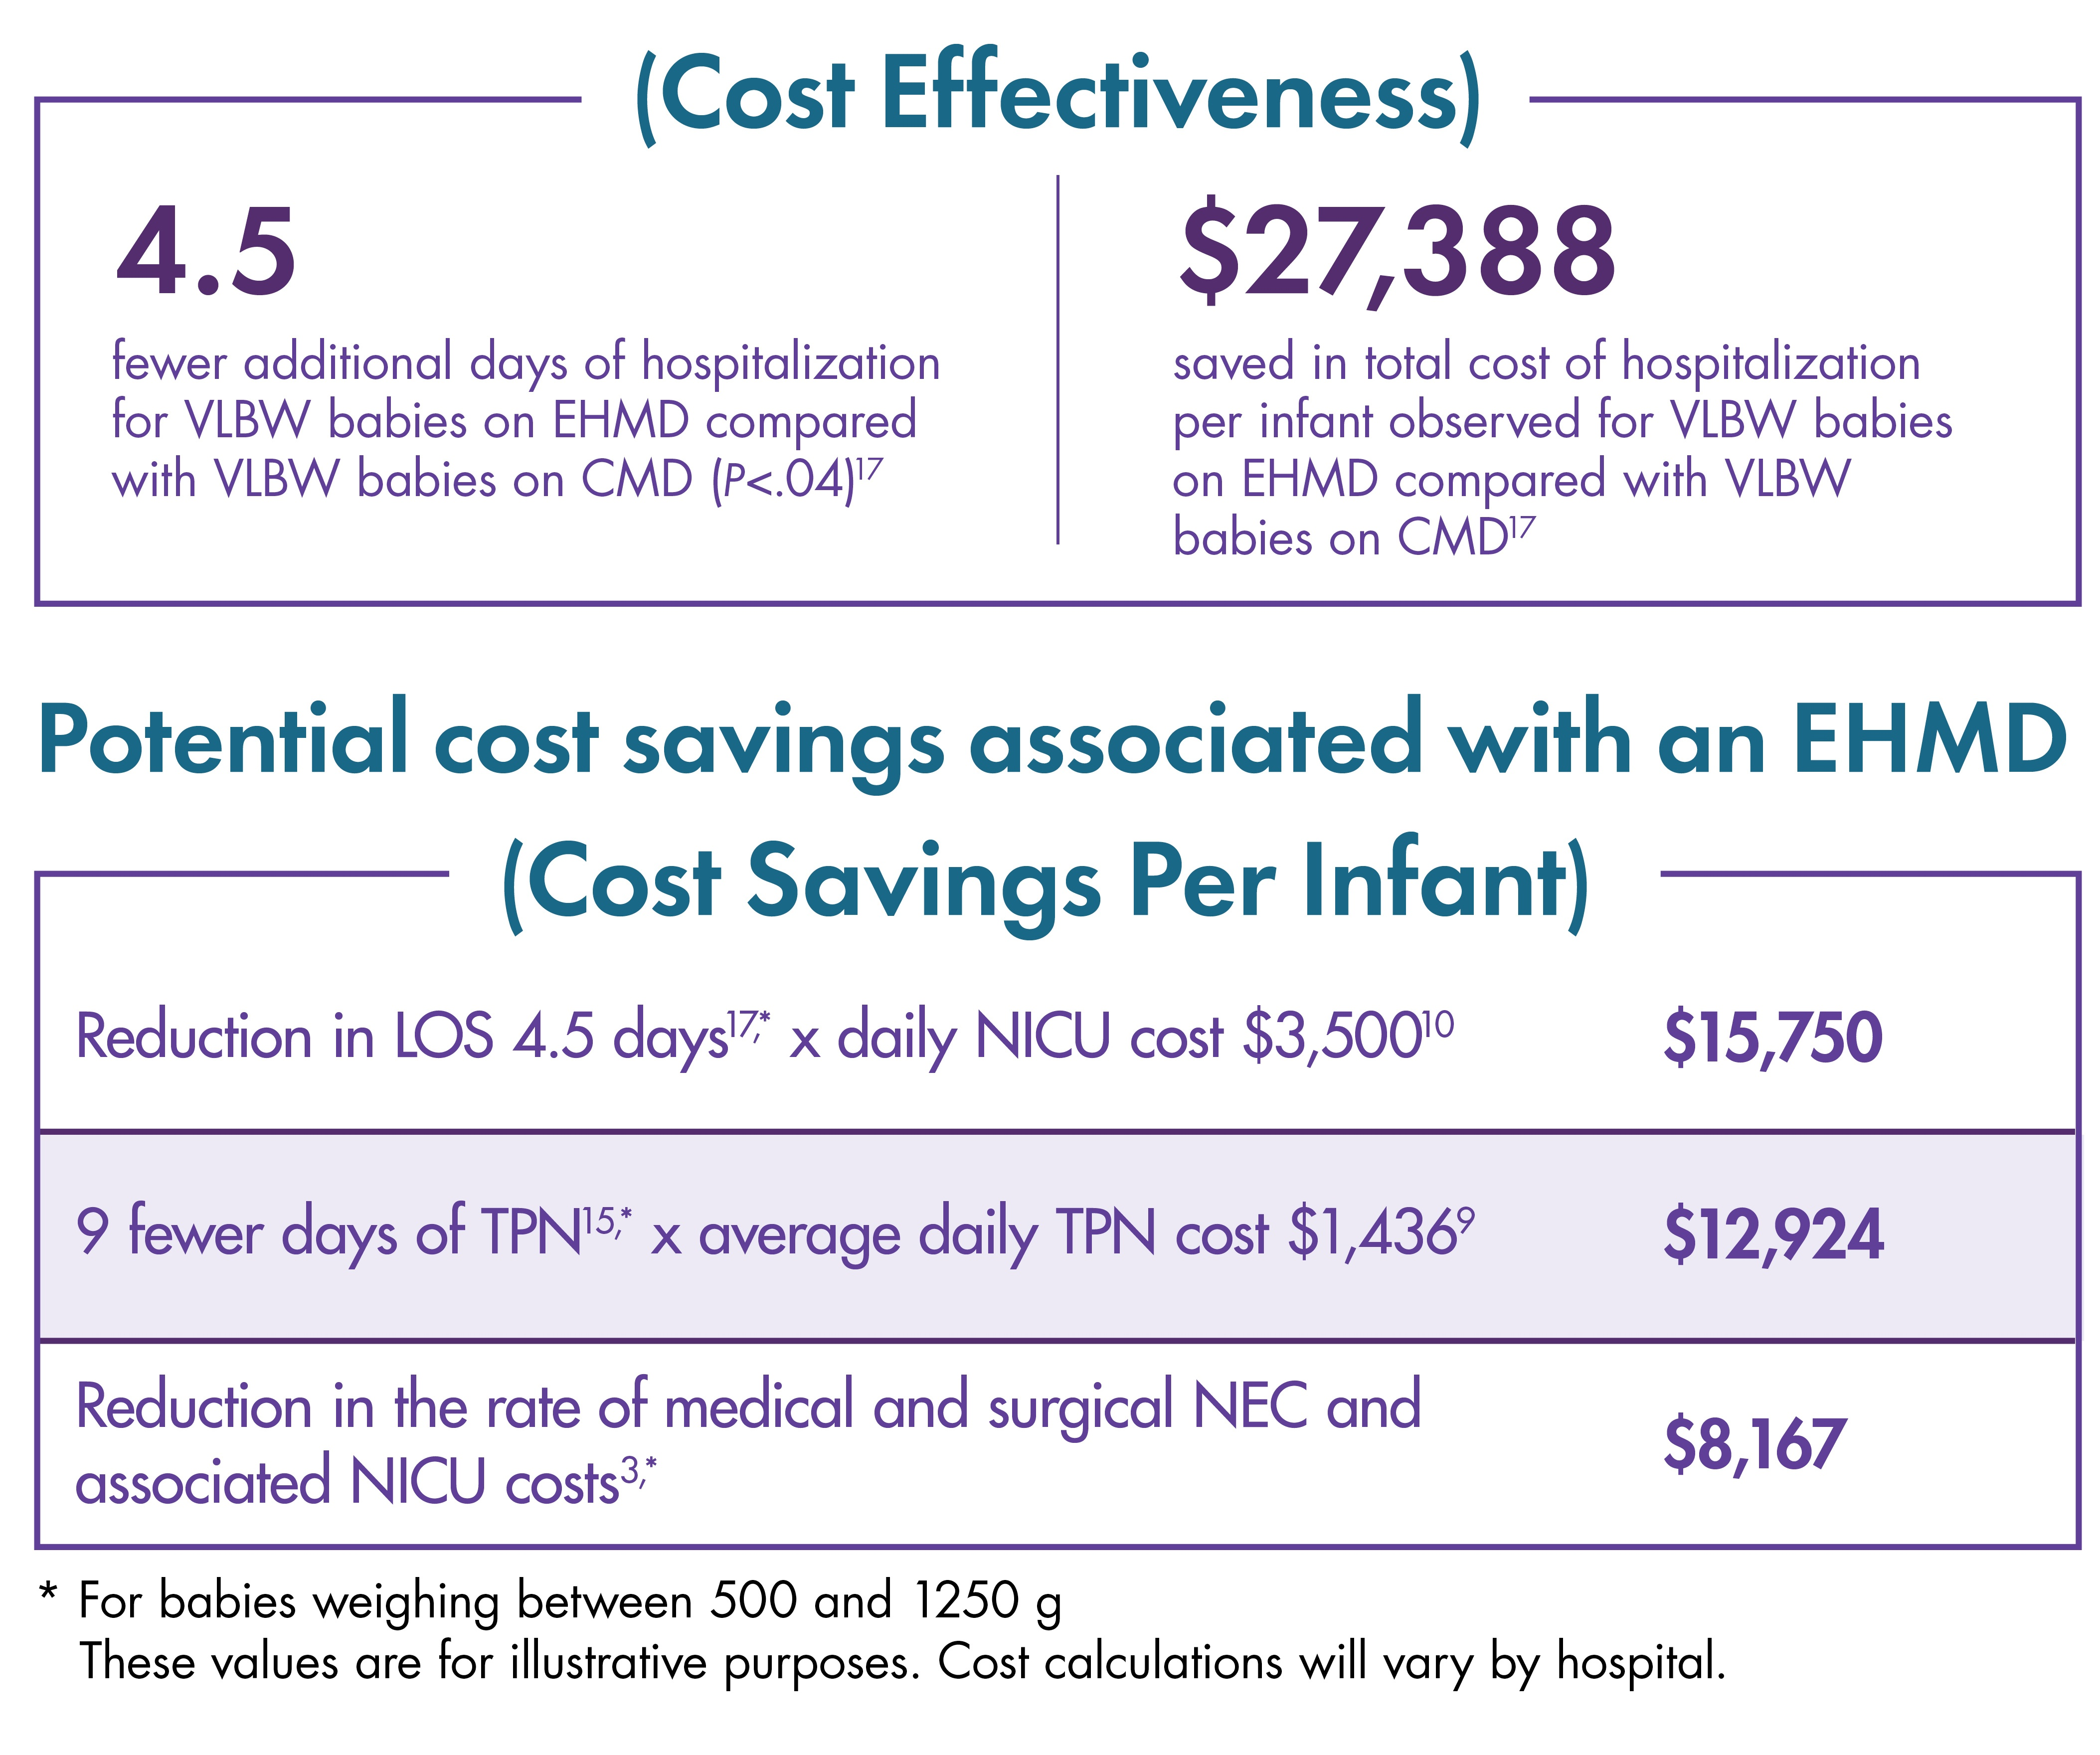 Save $27,388 in total cost of hospitalization per infant on Prolacta